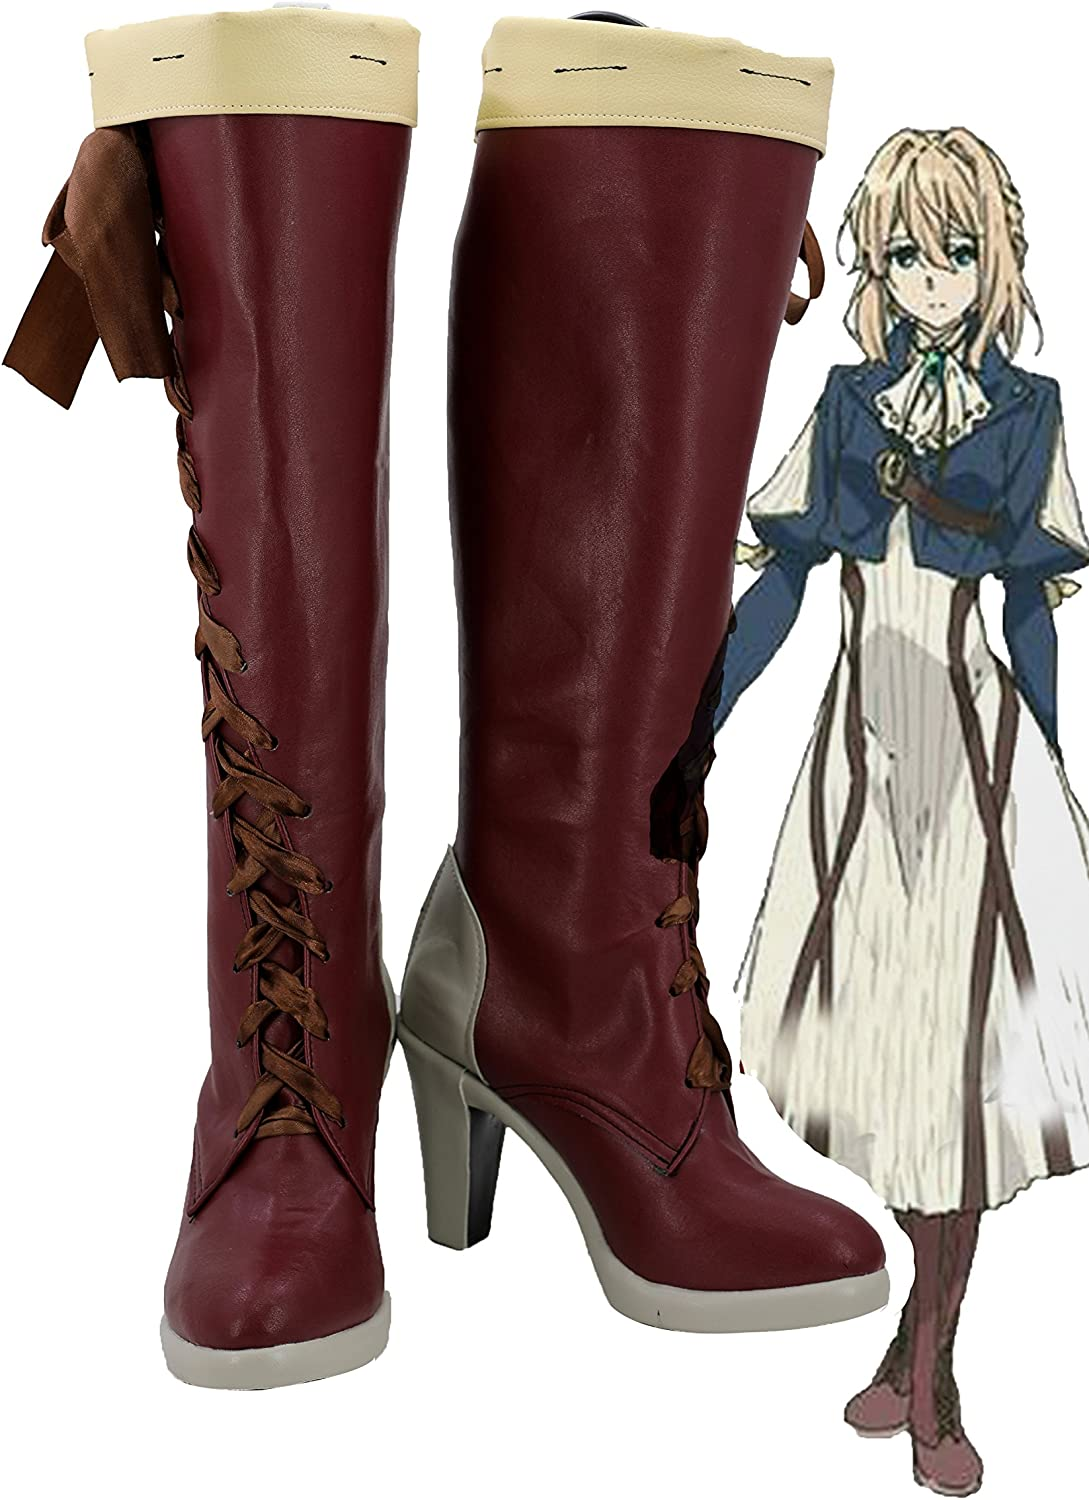 Violet Evergarden shipfree Cosplay Shoes Boots Red Custom Sale SALE% OFF Made 2